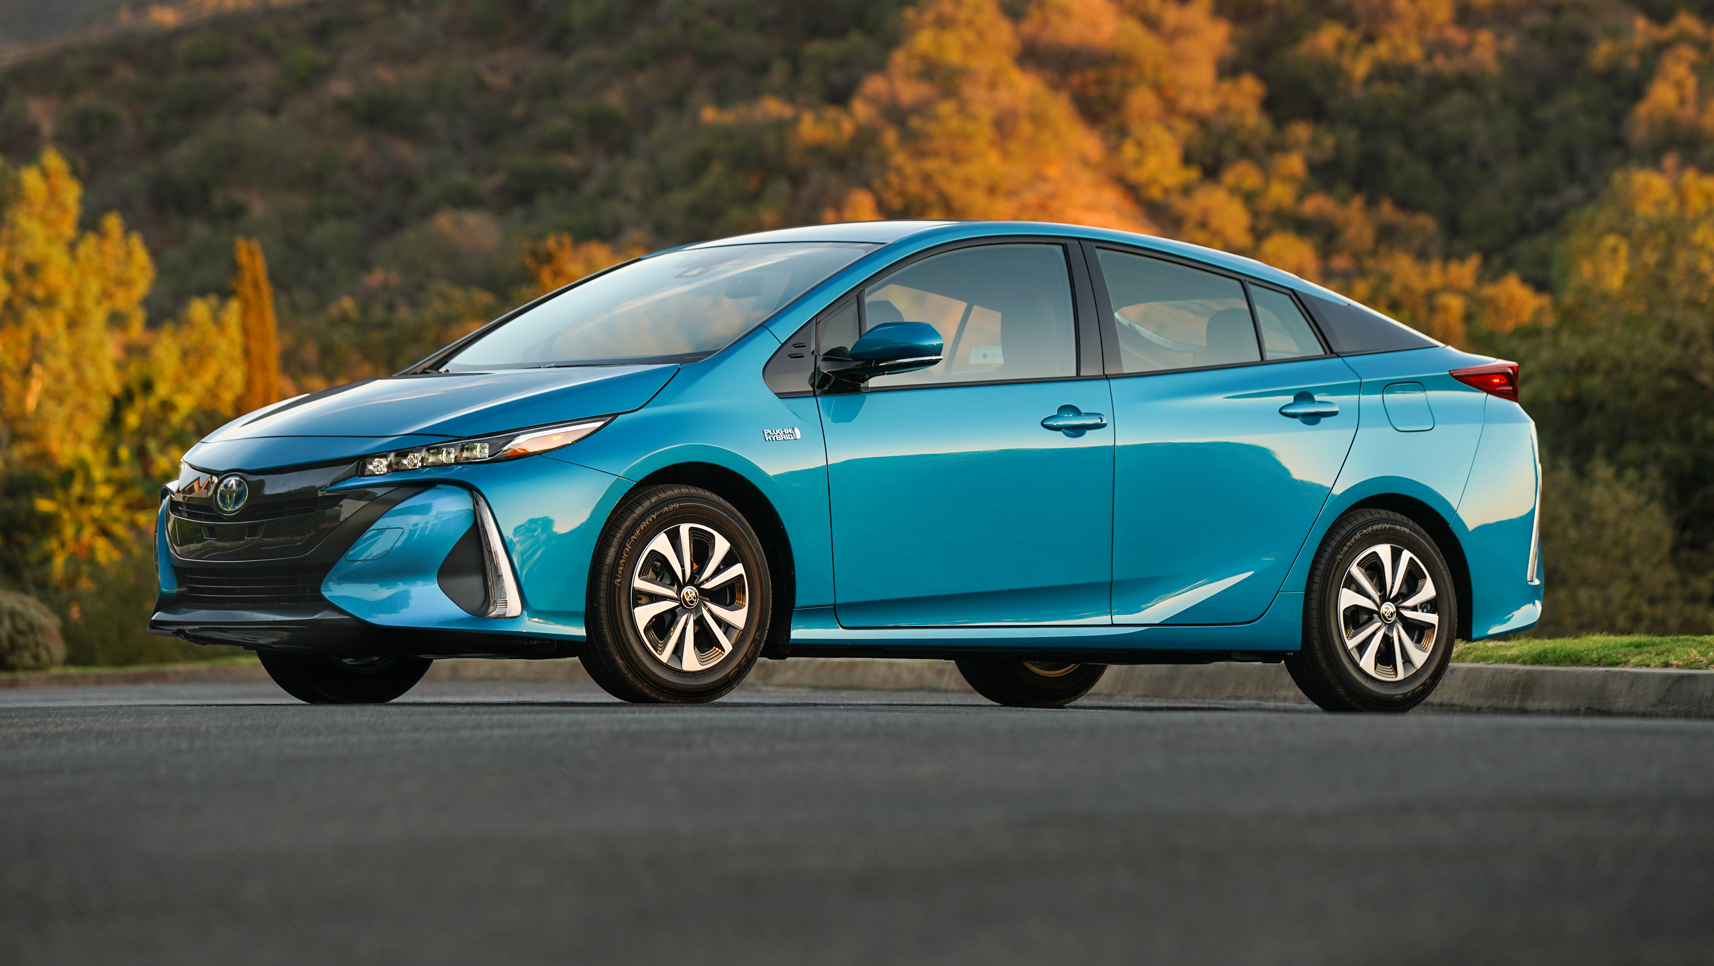 Toyota breaks new ground with 2017 Prius Prime hybrid plug-in